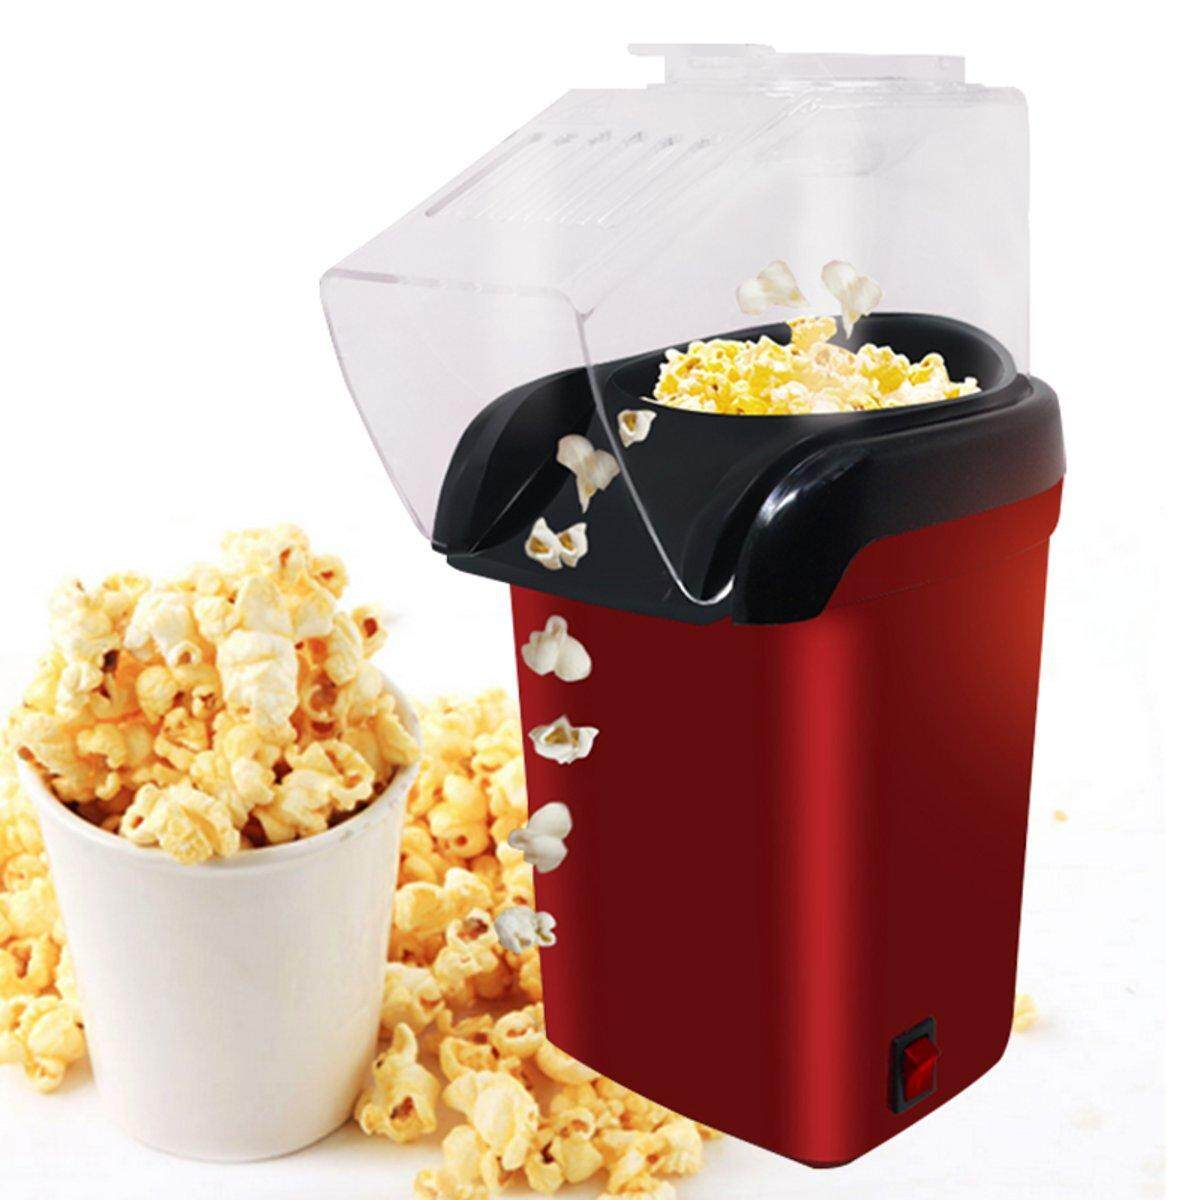 Popcorn Makers Buy Popcorn Makers At Best Price In Singapore Www